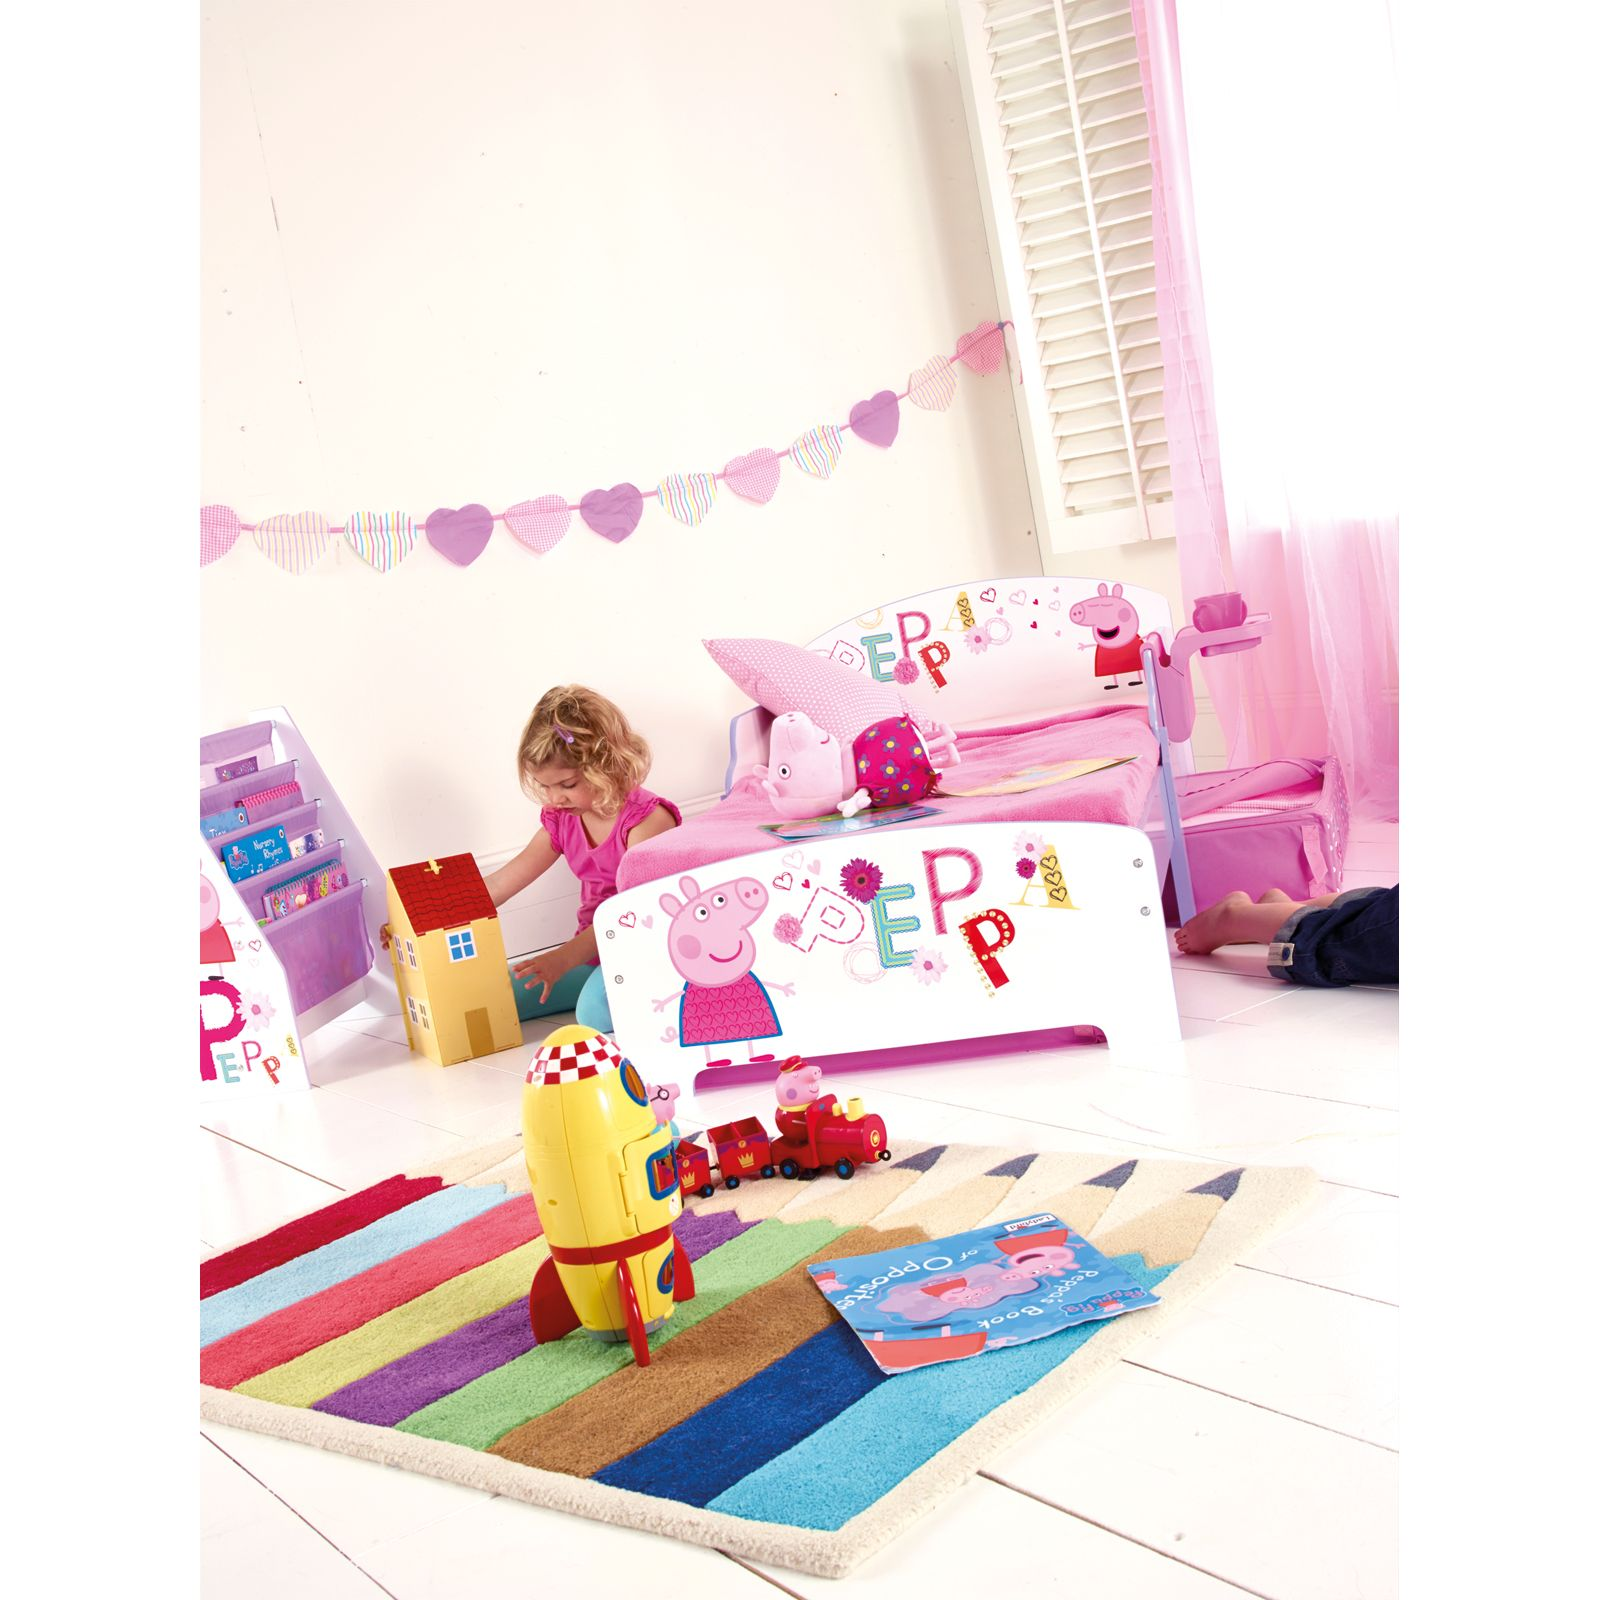 Minnie Mouse Bedroom 3 Drawer Storage Kids Wooden Box Pink: CHARACTER + DISNEY JUNIOR TODDLER BEDS WITH STORAGE